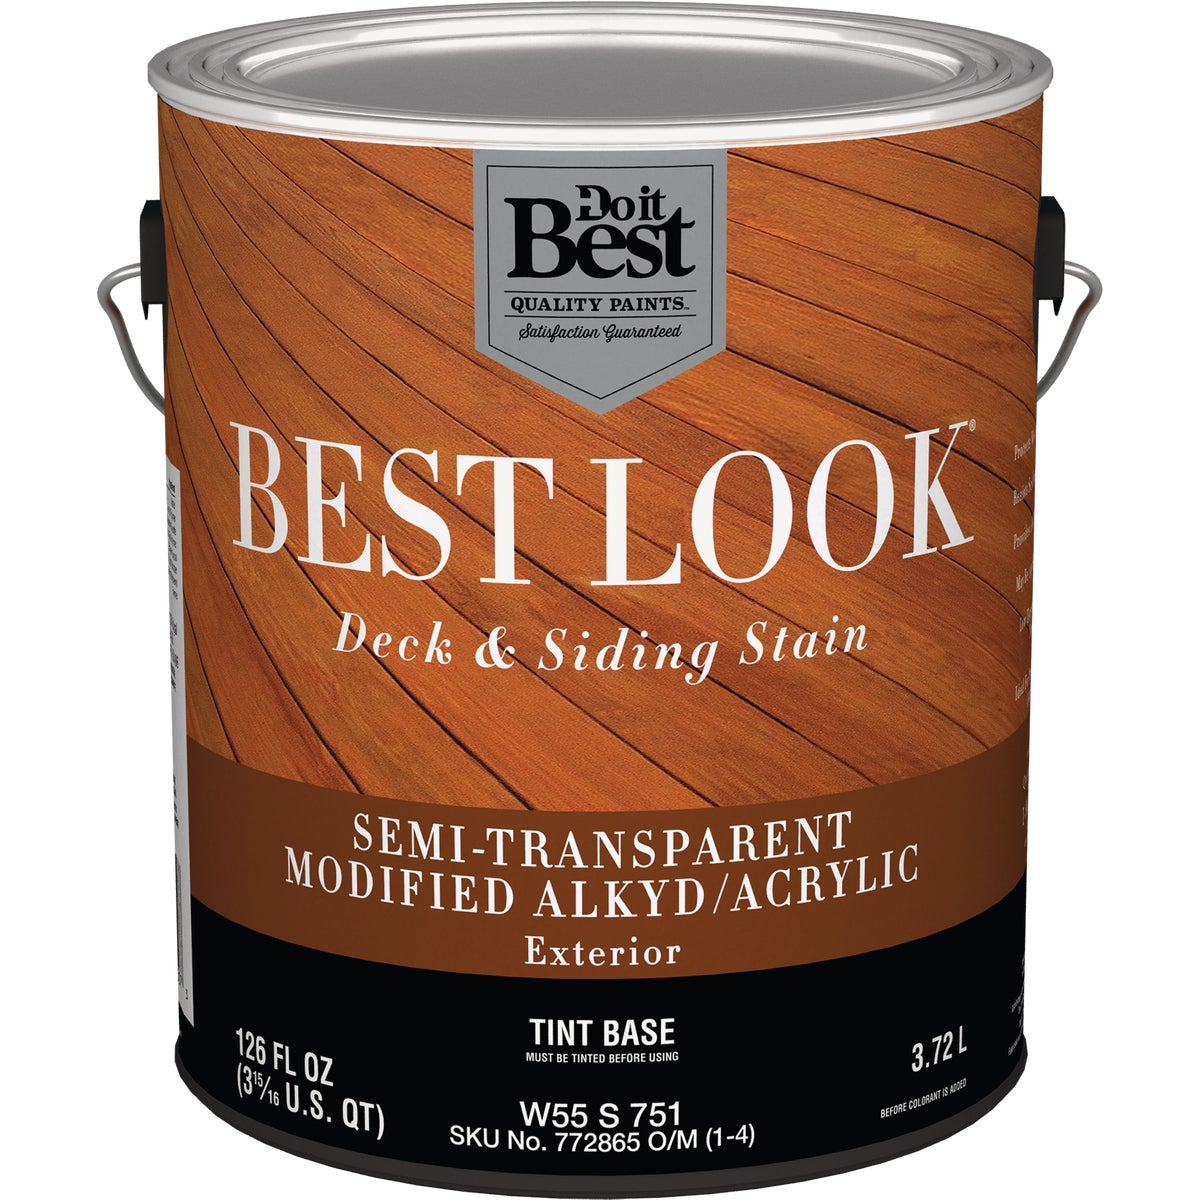 EXT LTX TINT BS STAIN